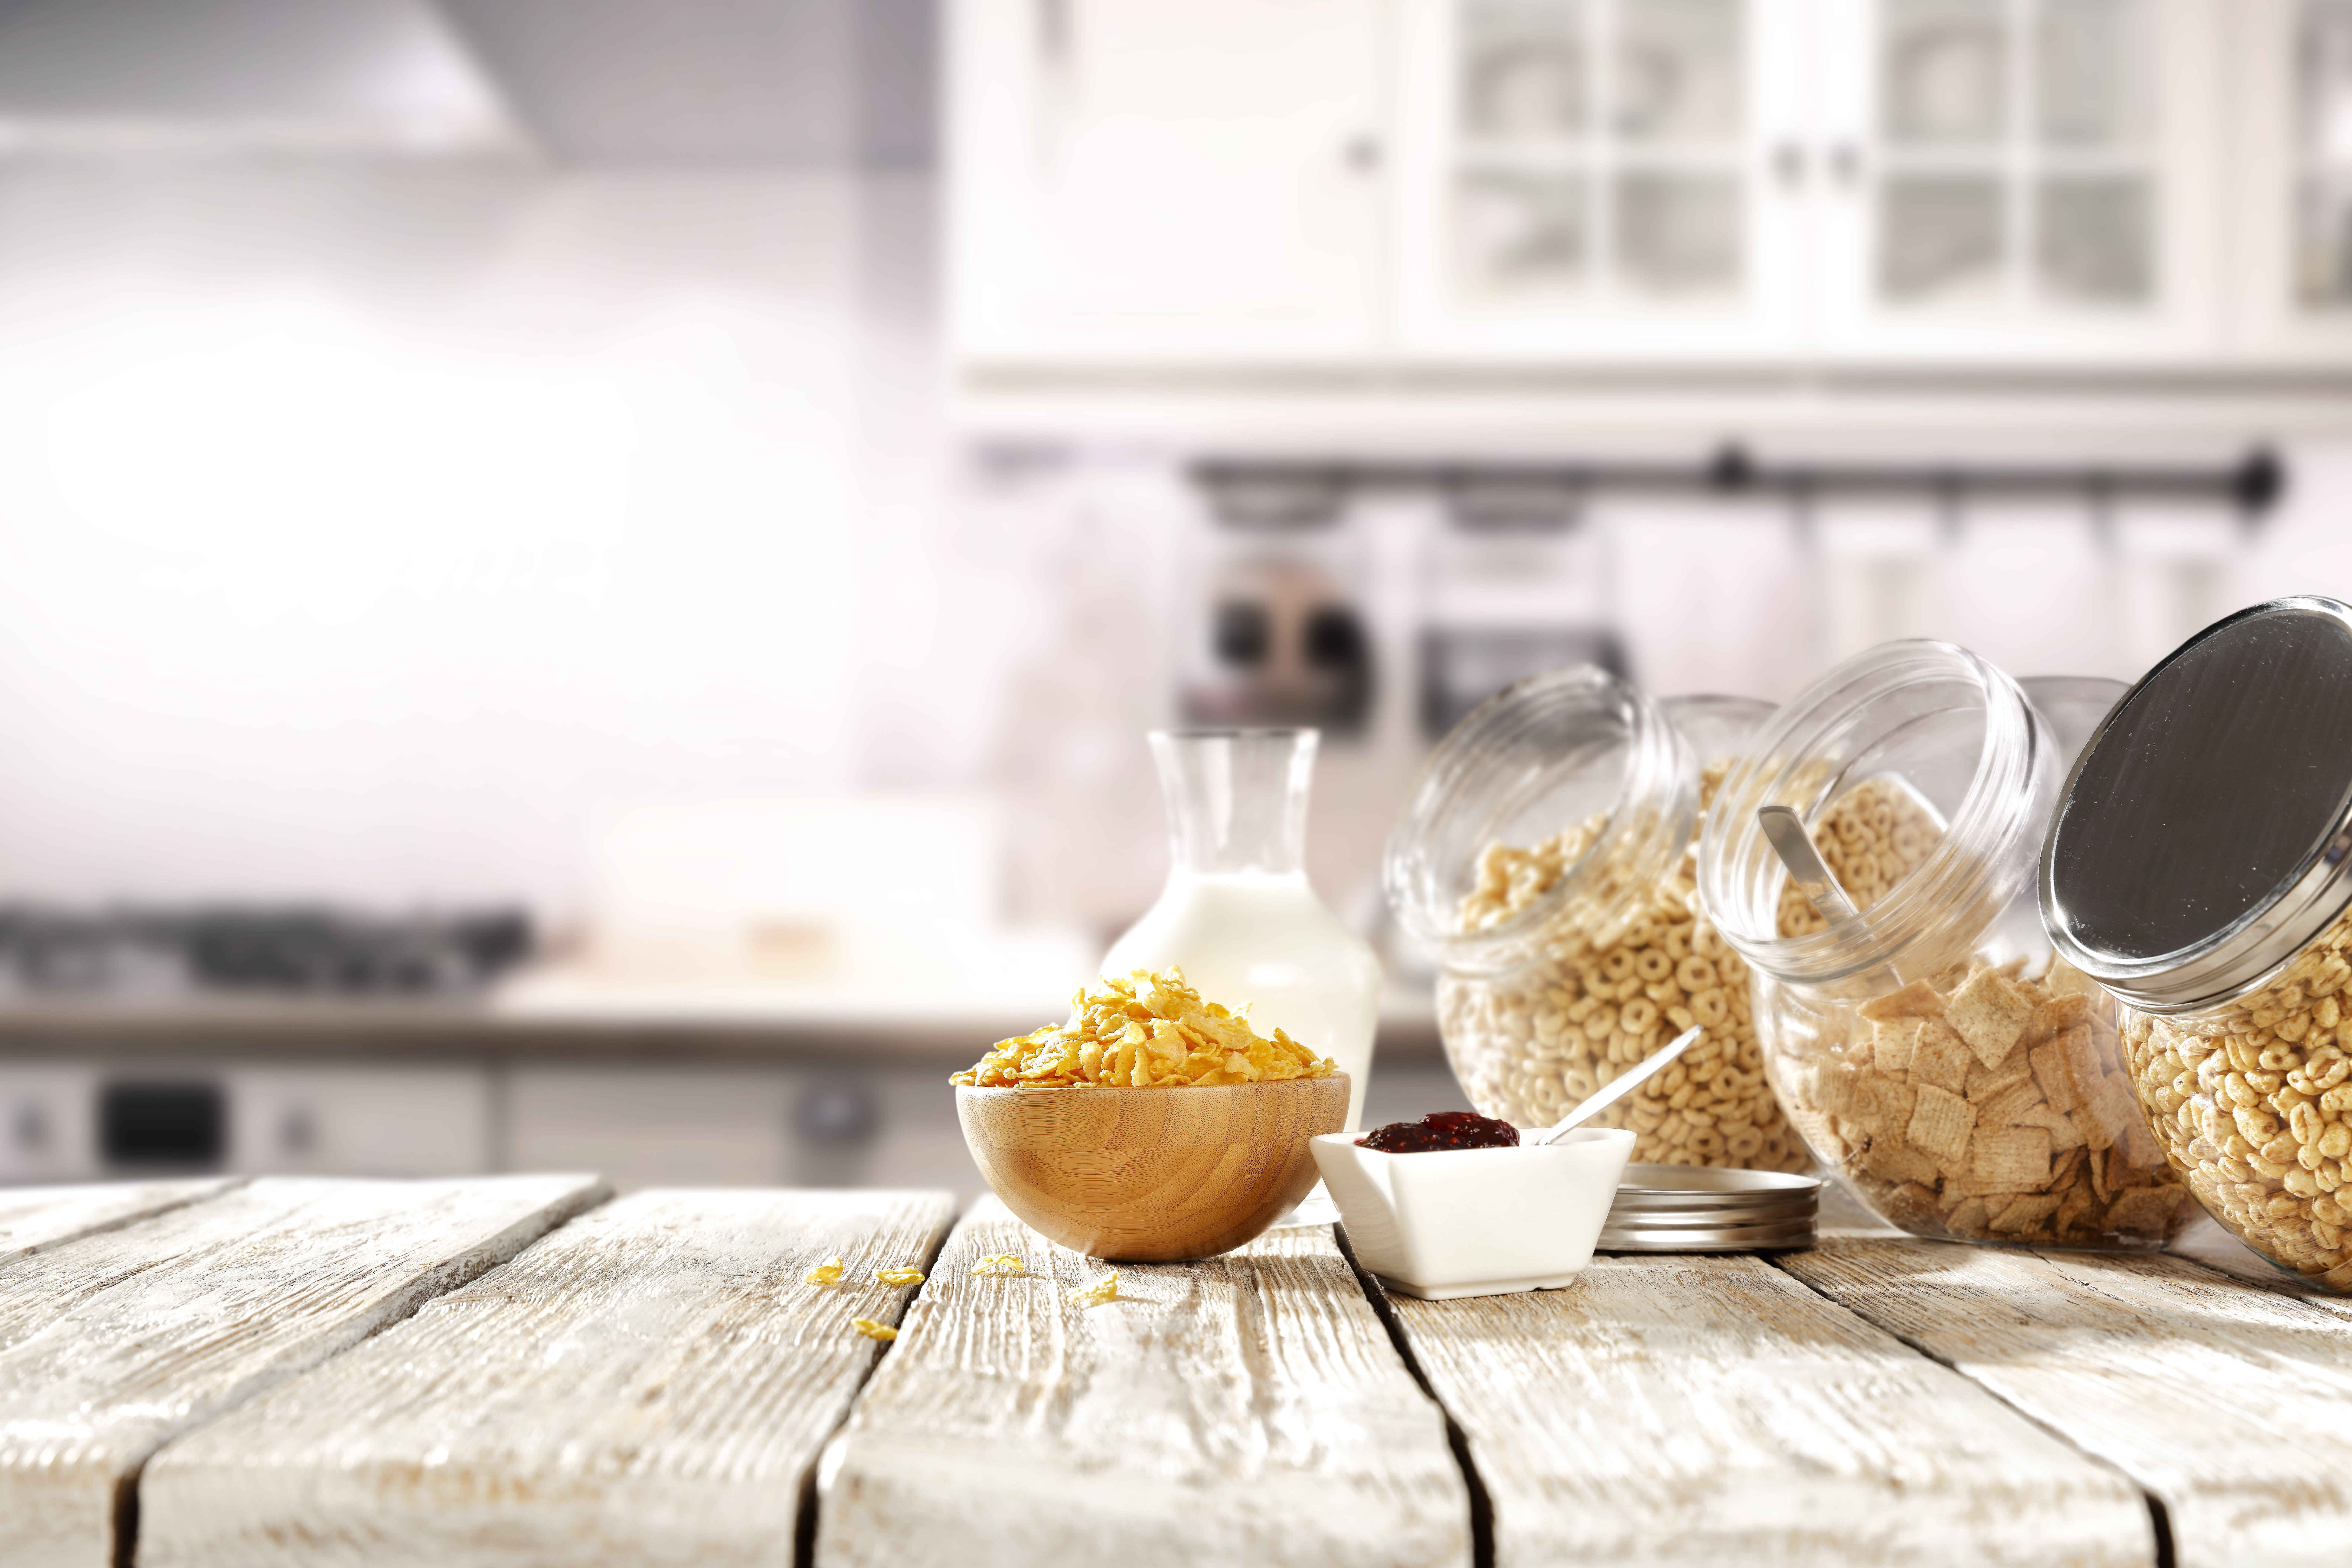 Offering your guests fairly priced breakfast items in the like can save them money and earn you additional revenue